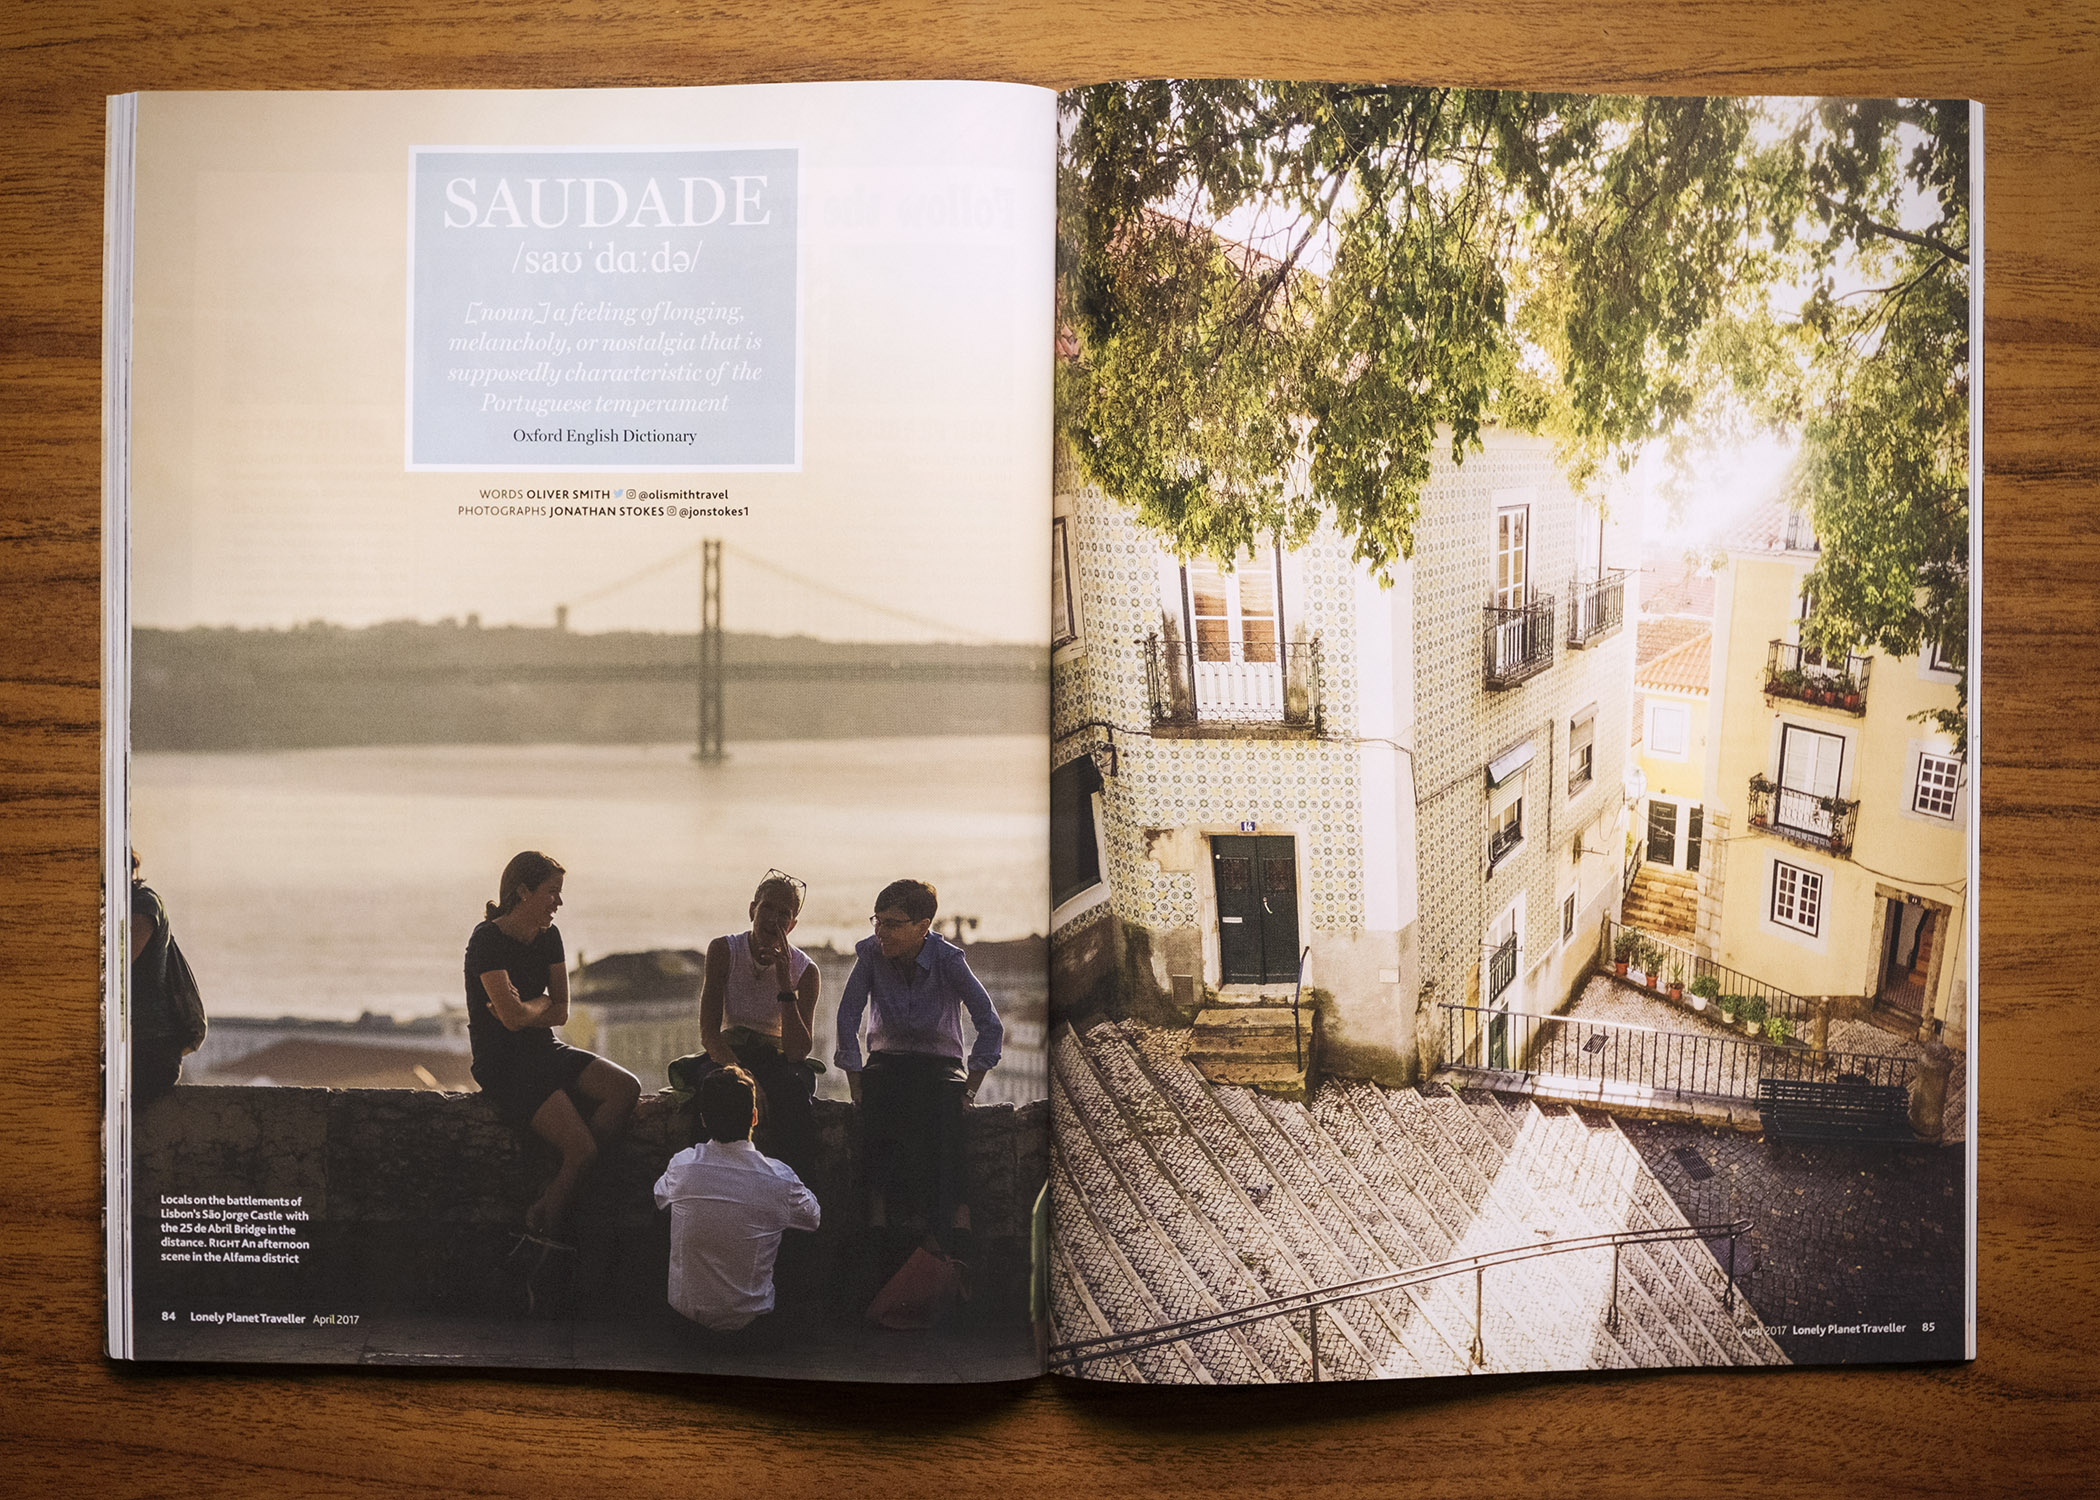 "SAUDADE  ""A feeling of longing, melancholy, or nostalgia that is supposedly charatericstic of the Portuguese temperament ""  Oxford English Dictionary  Feature for Lonely Planet Traveller Magazine in Lisbon, Portugal.  Feature written by  Oliver Smith."